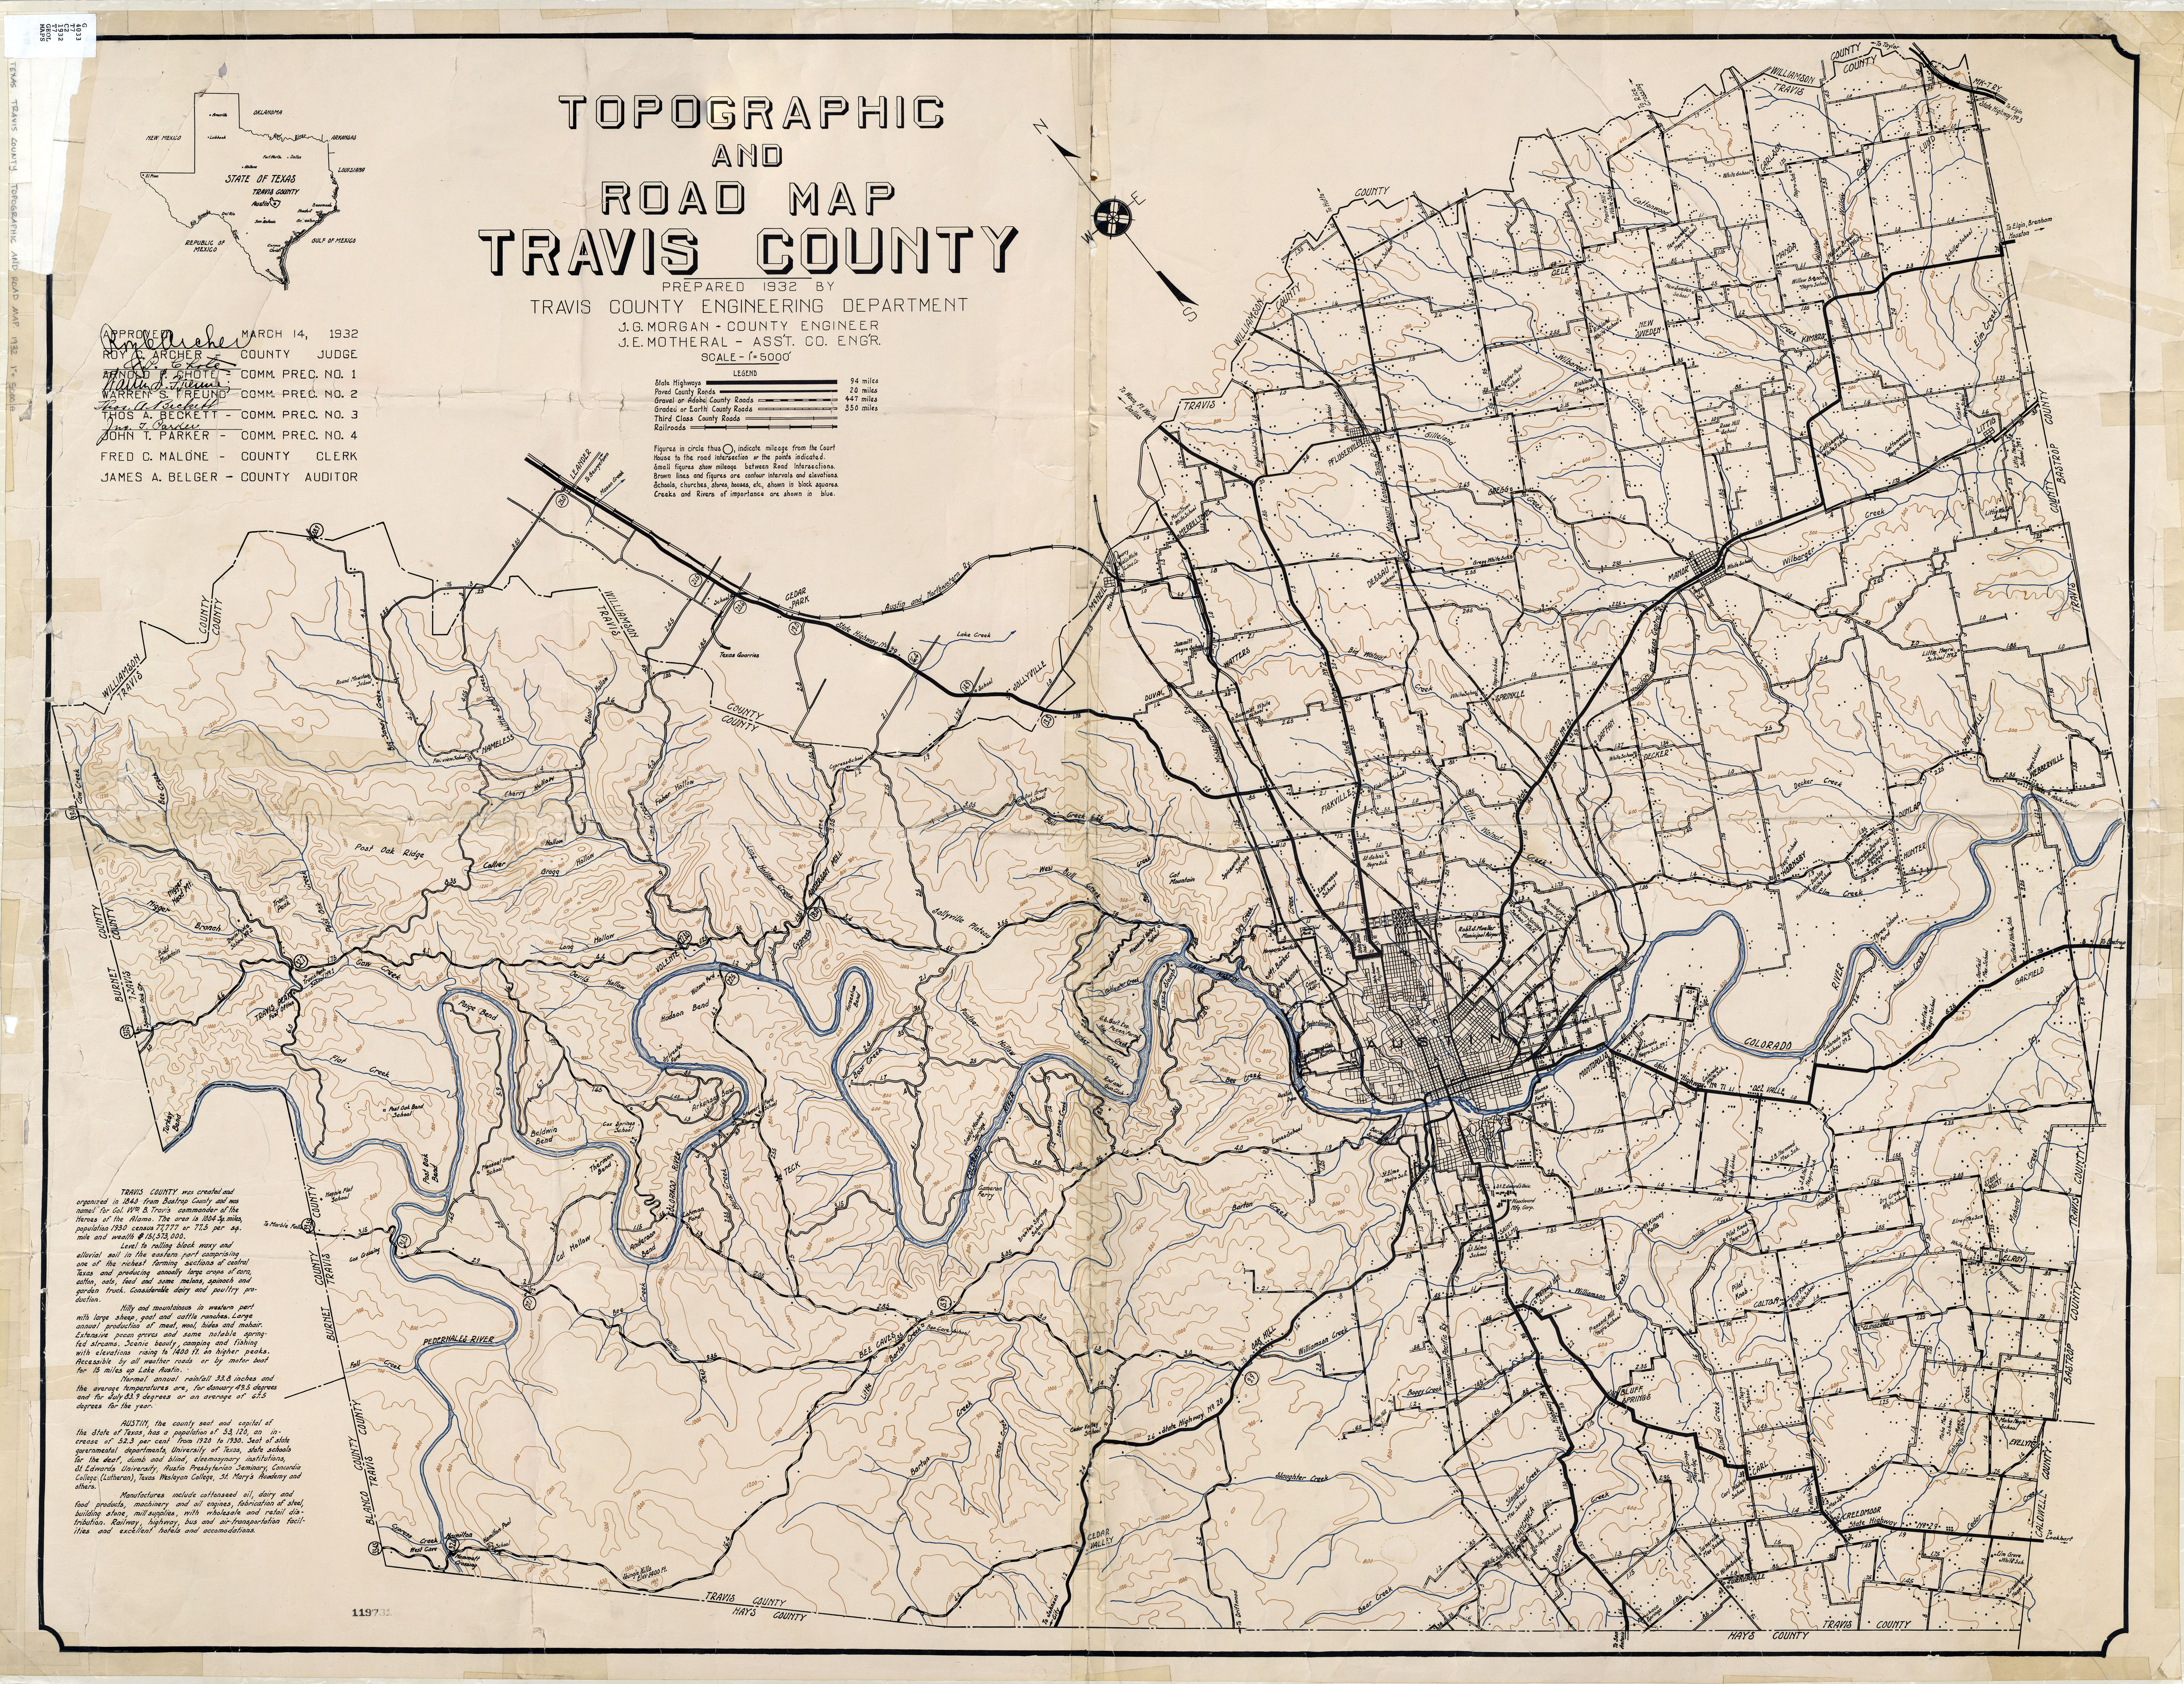 Texas Cities Historical Maps - Perry-Castañeda Map Collection - Ut - Texas Historical Sites Map